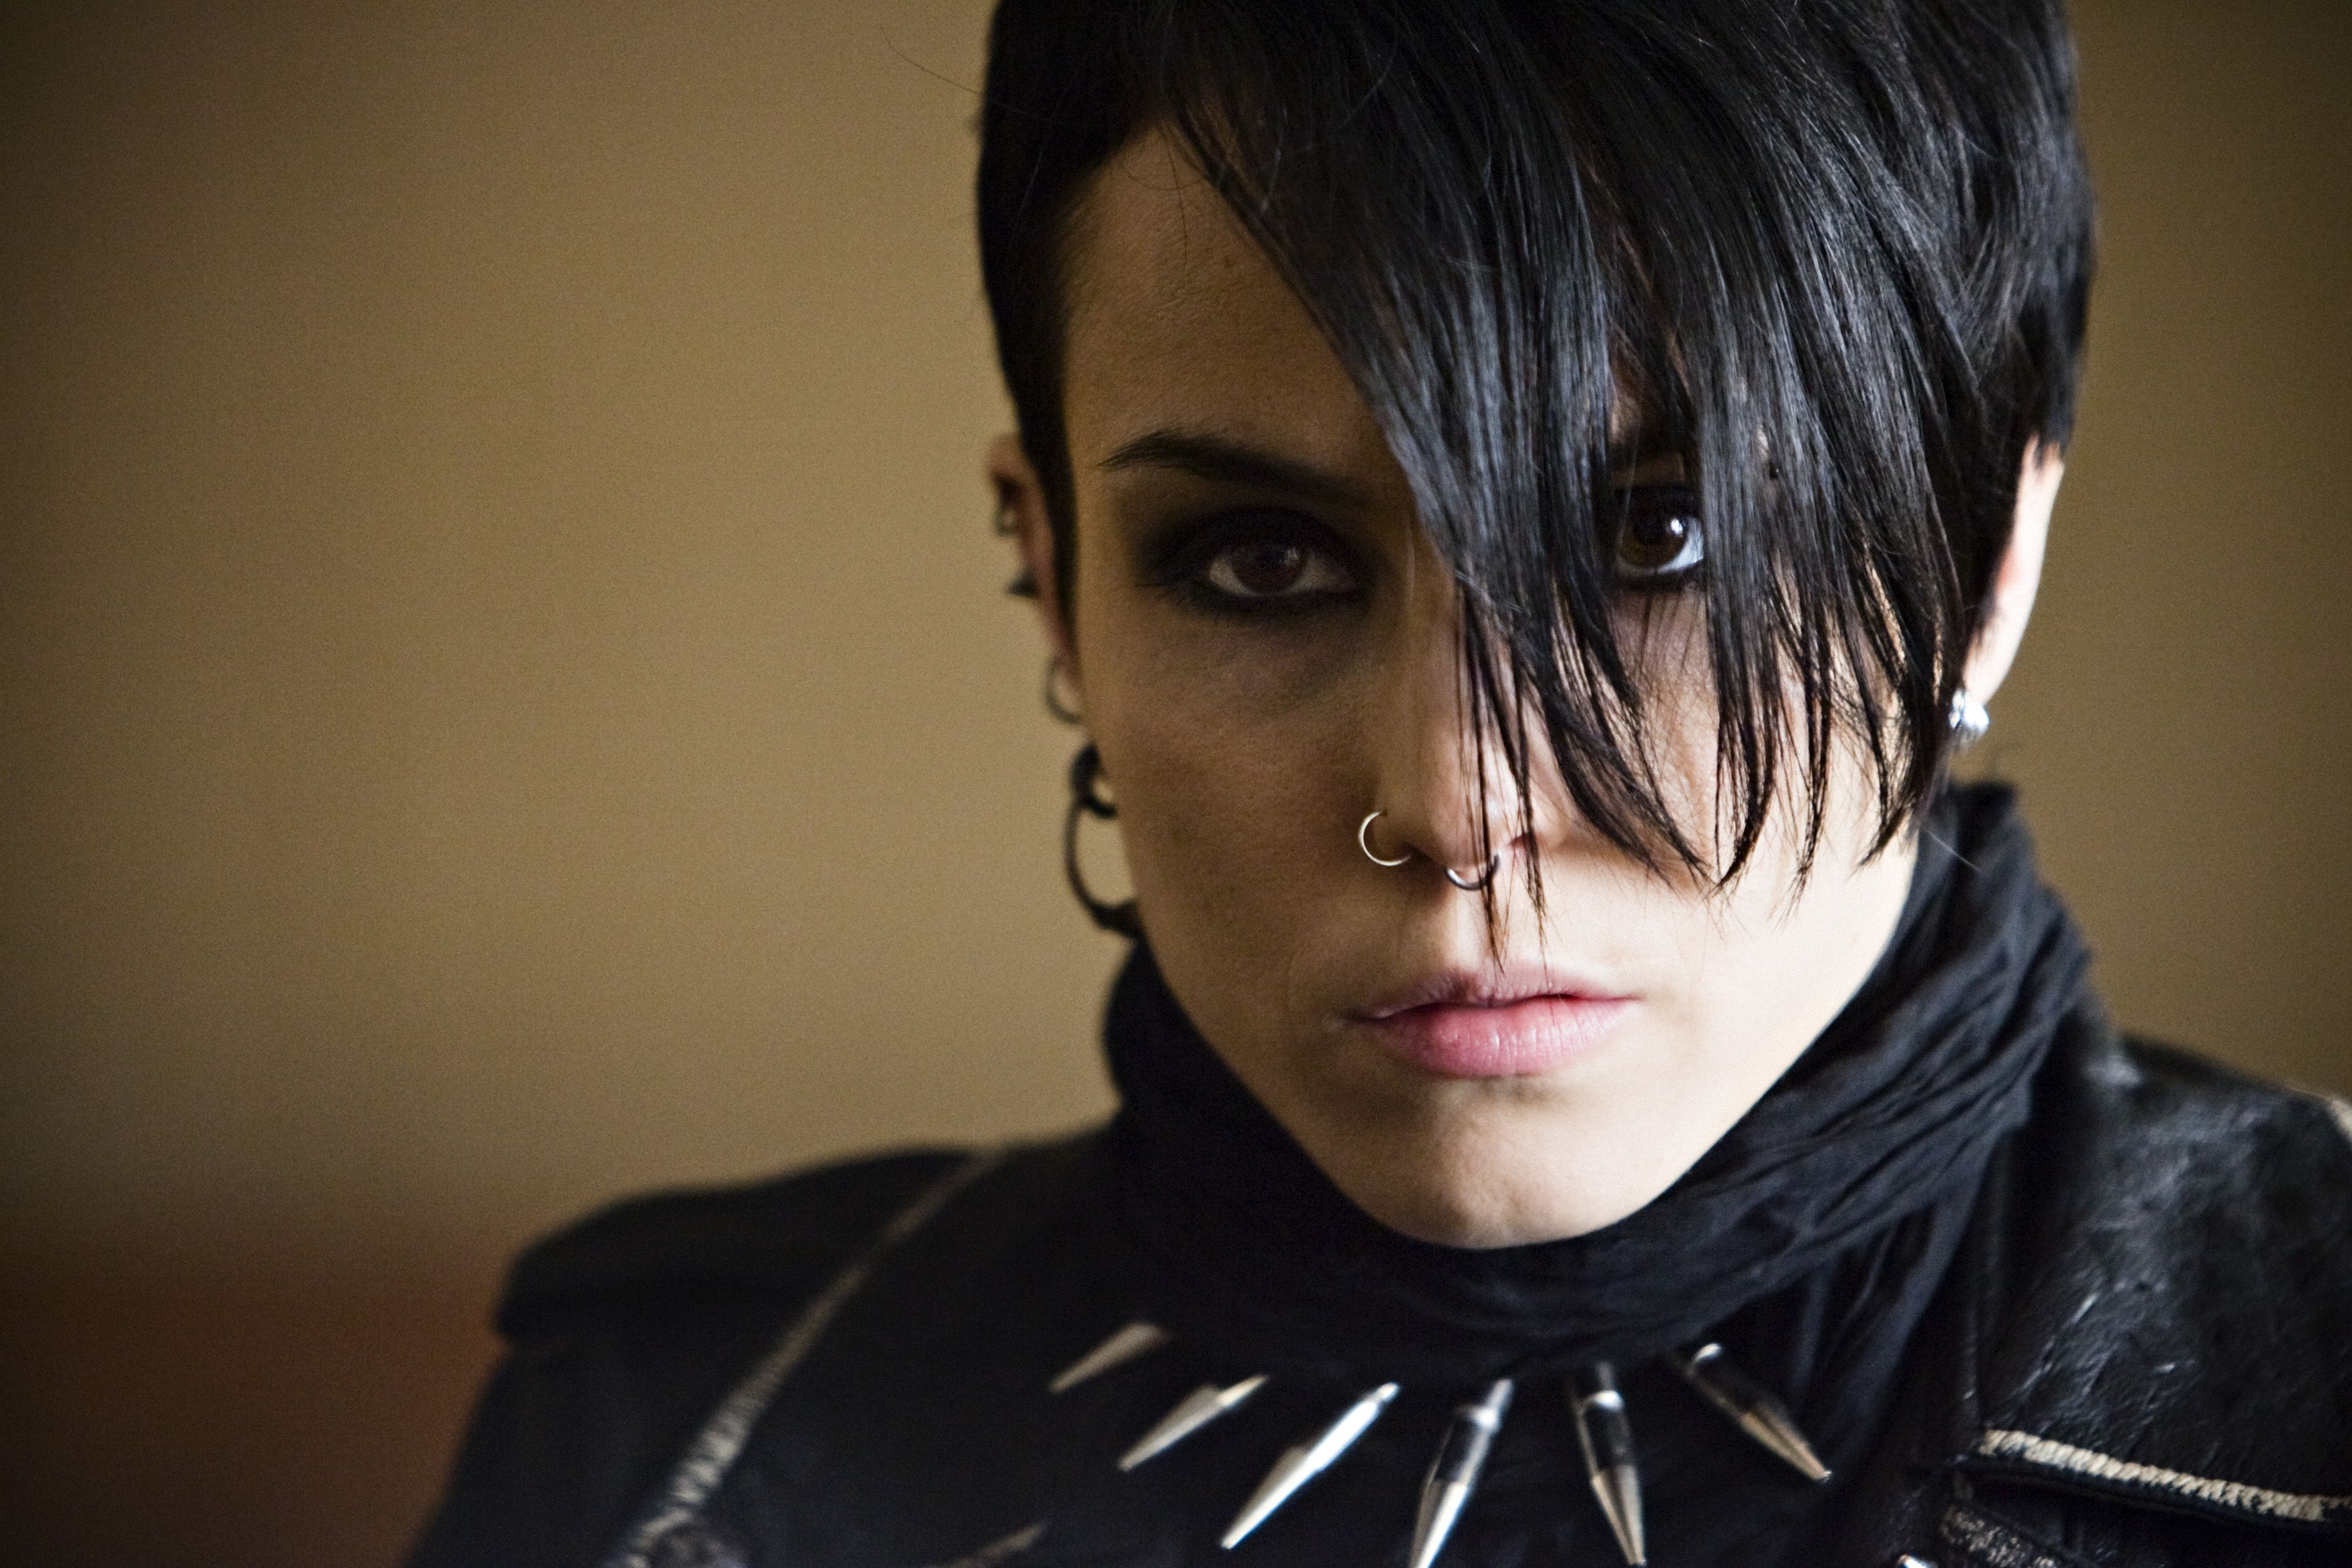 An image from The Girl with the Dragon Tattoo